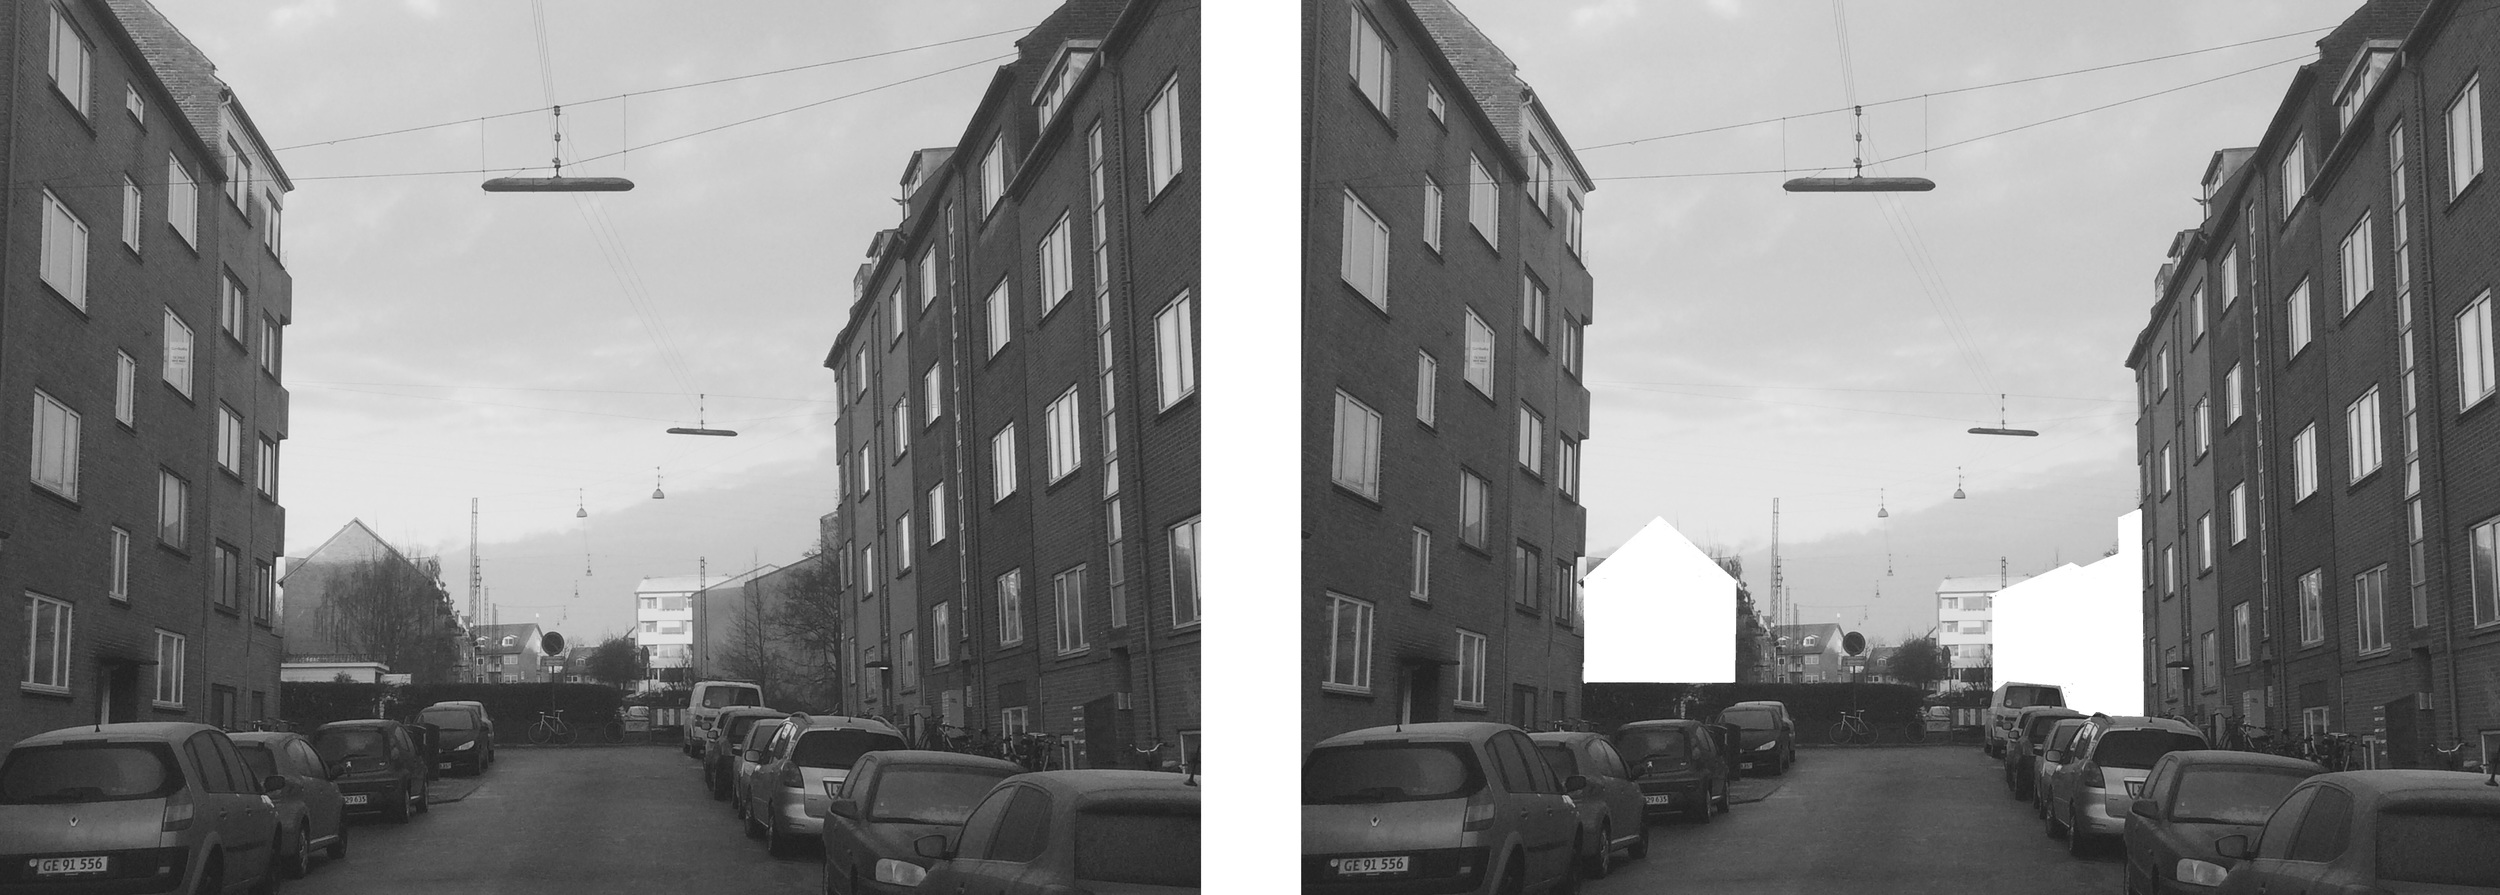 The edge of classical Aarhus. Over the road the buildings are alligned to optimise light in-fall. The result is a set of gable walls exposed to view.